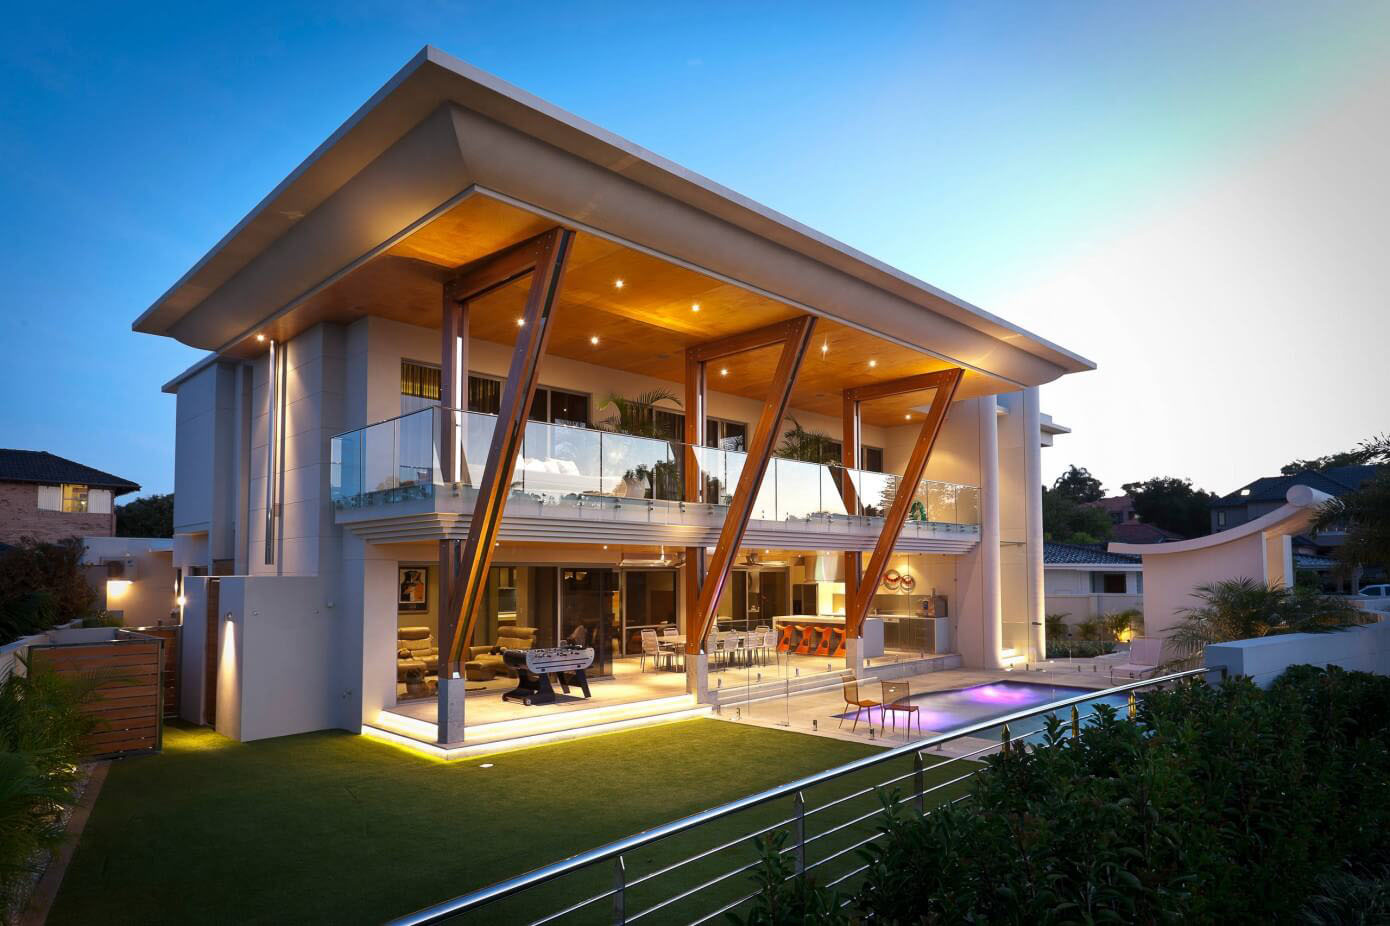 Ultra modern home in perth with large roof idesignarch for Large modern house plans